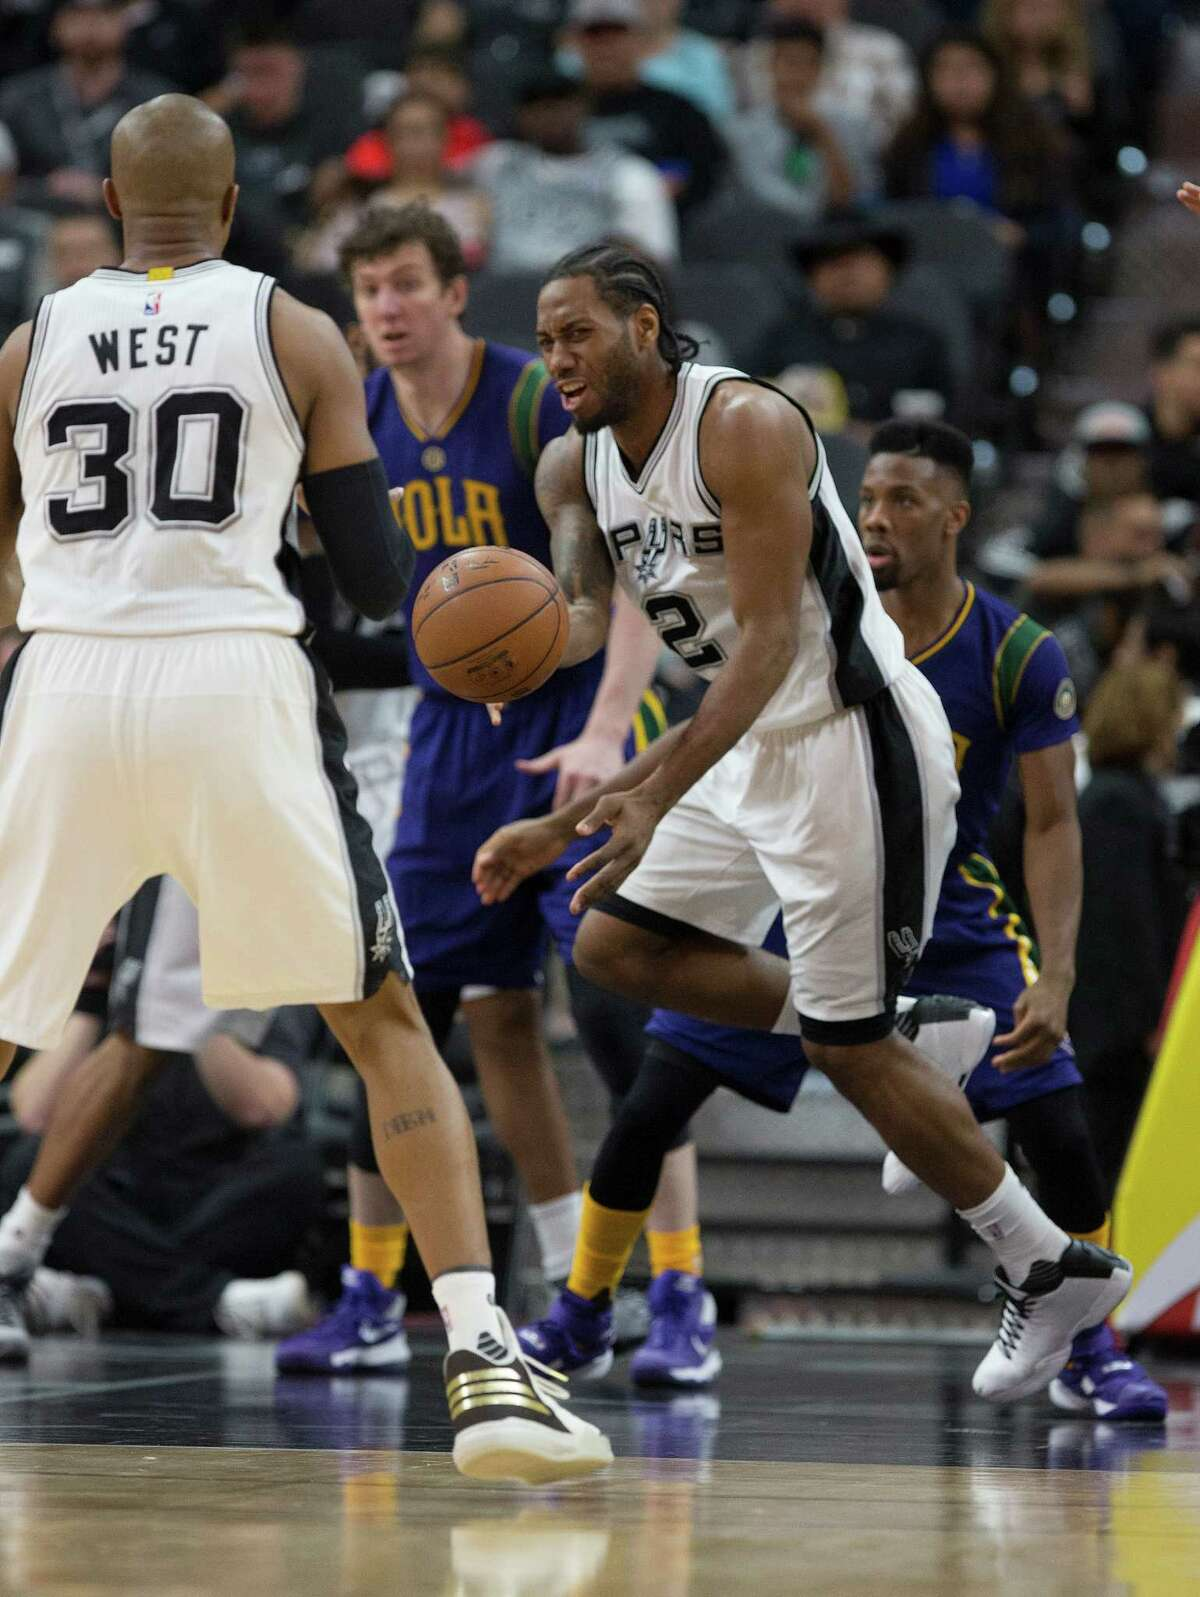 San Antonio Spurs' Kawhi Leonard passes the ball to David West during the second half at the AT&T Center, Wednesday, Feb. 3, 2016.